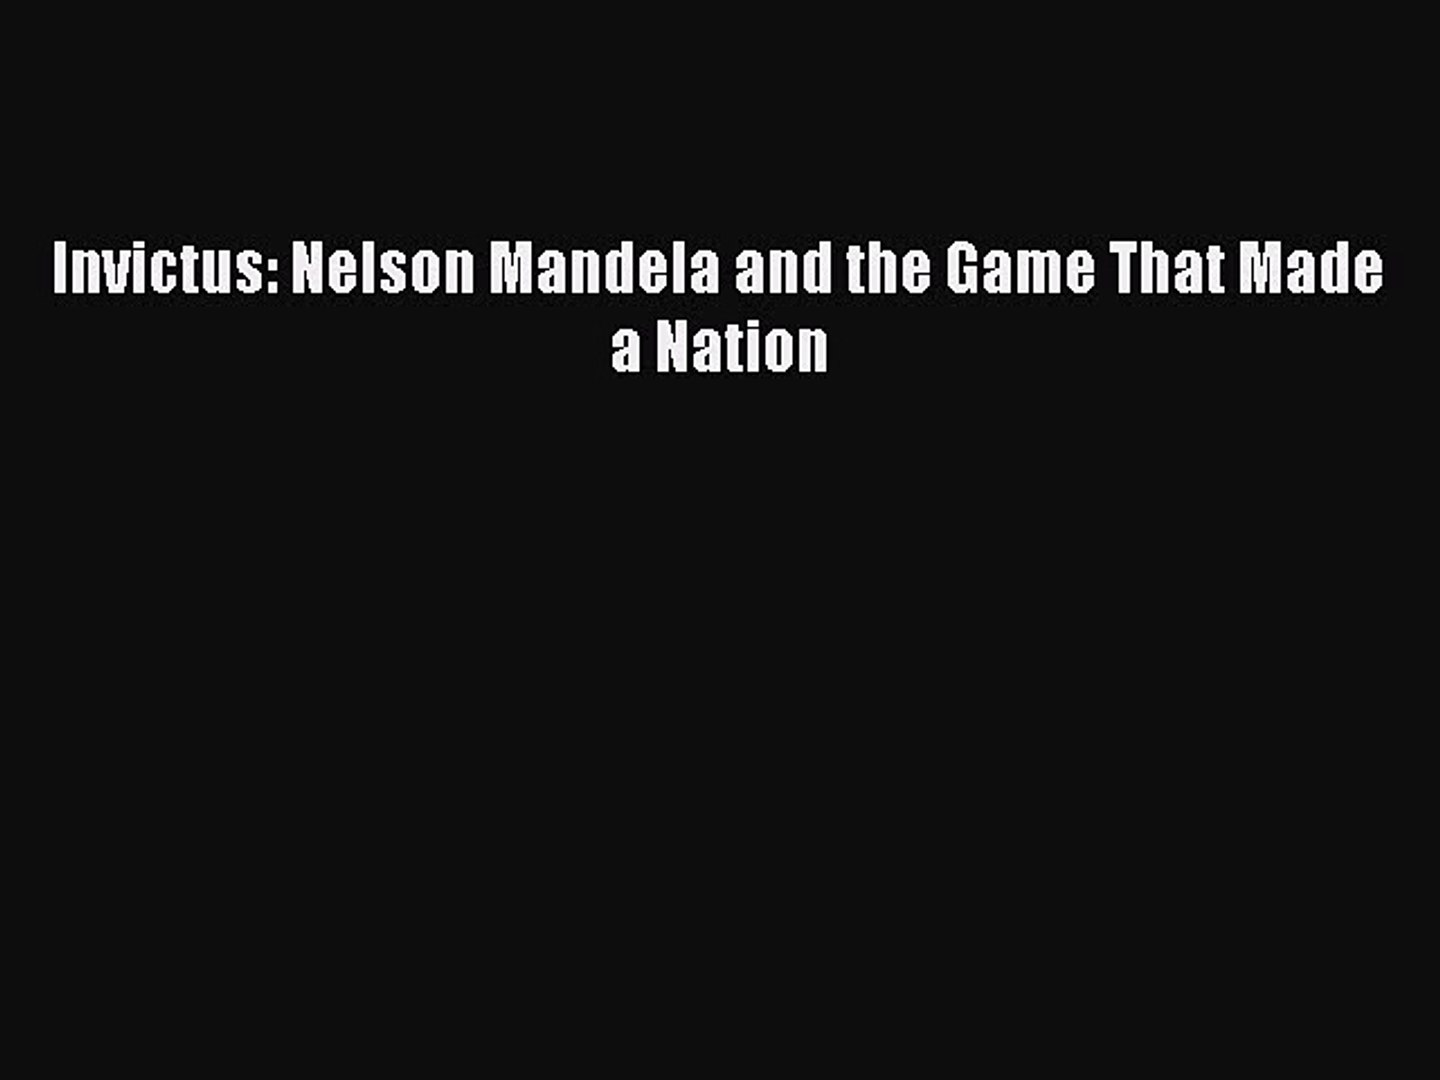 Pdf Download Invictus Nelson Mandela And The Game That Made A Nation Download Full Ebook